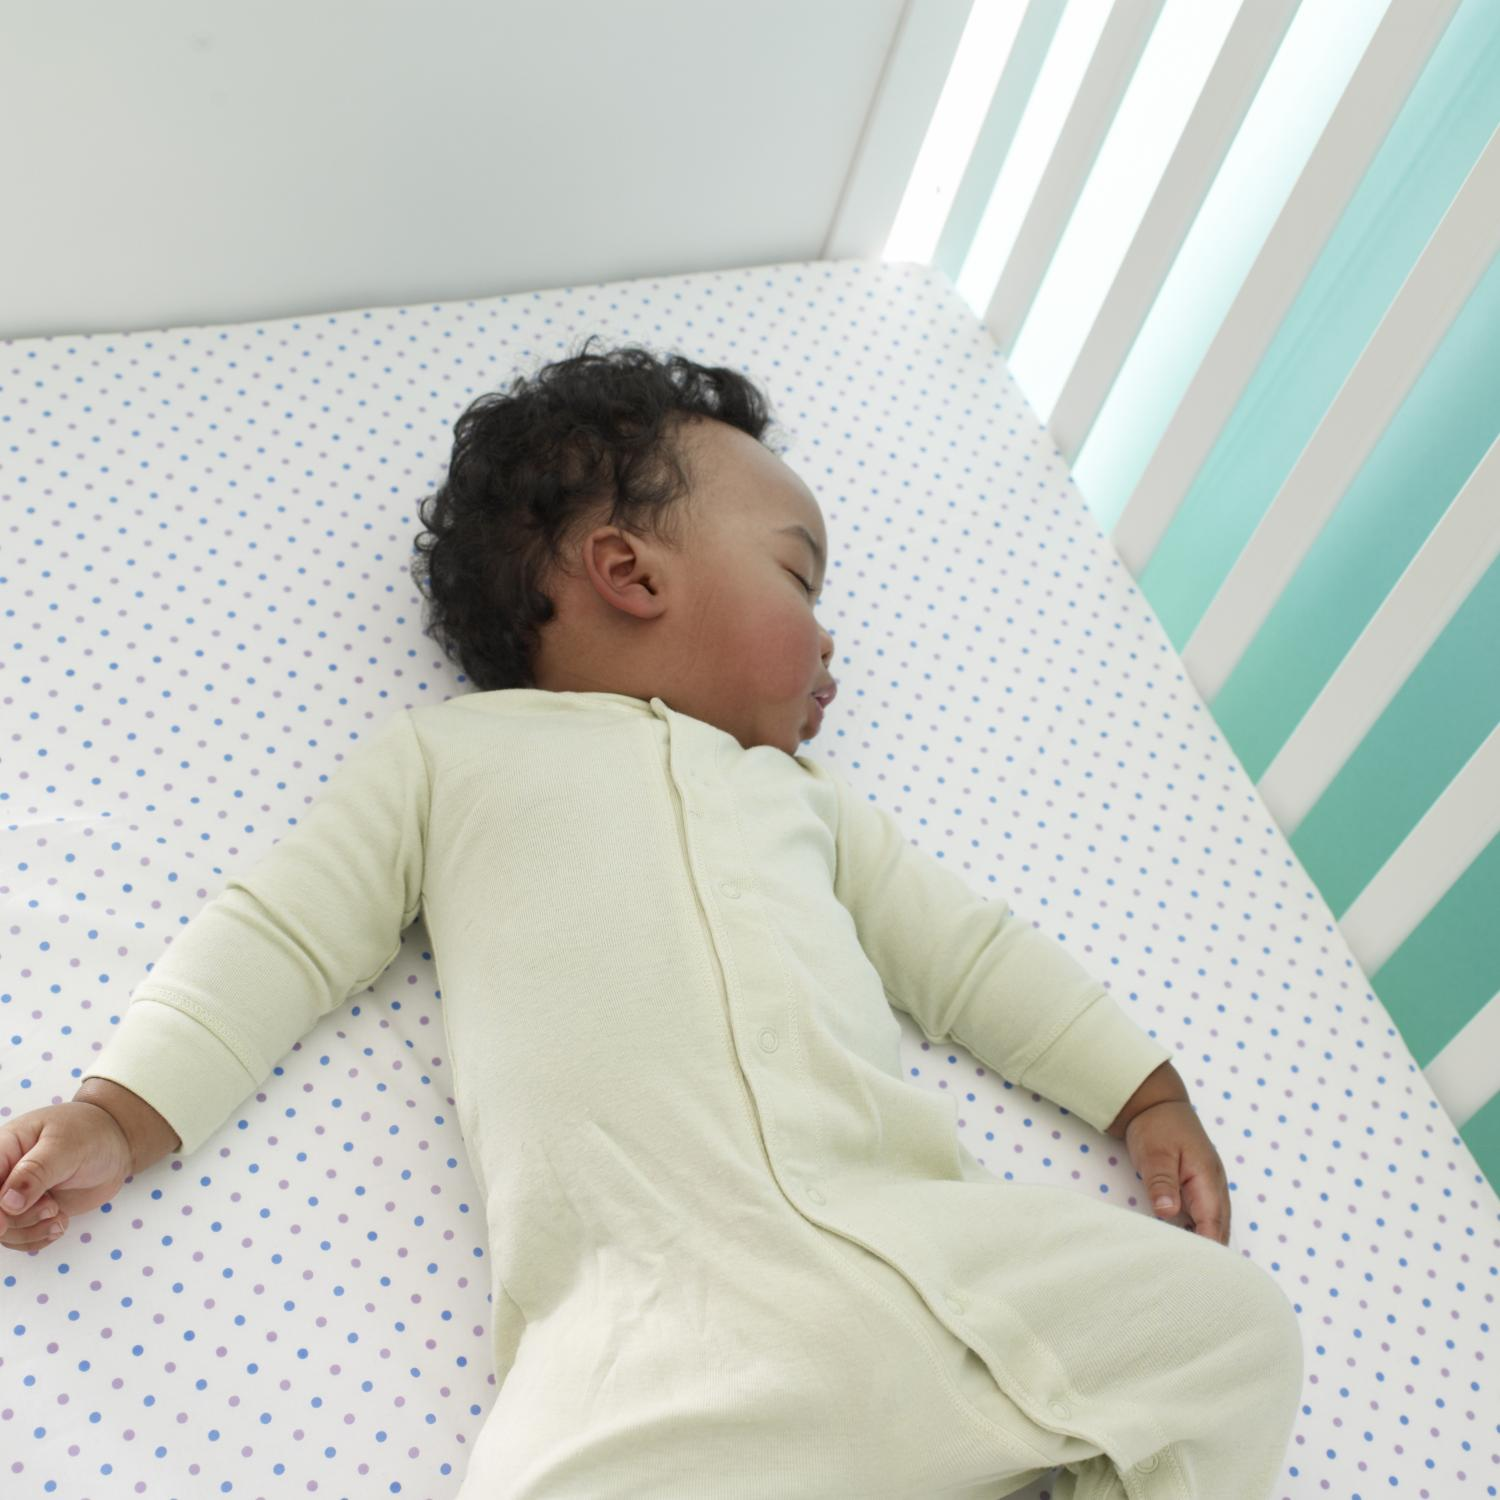 Study New Pas Still Use Soft Bedding For Newborns Despite Sids Risk